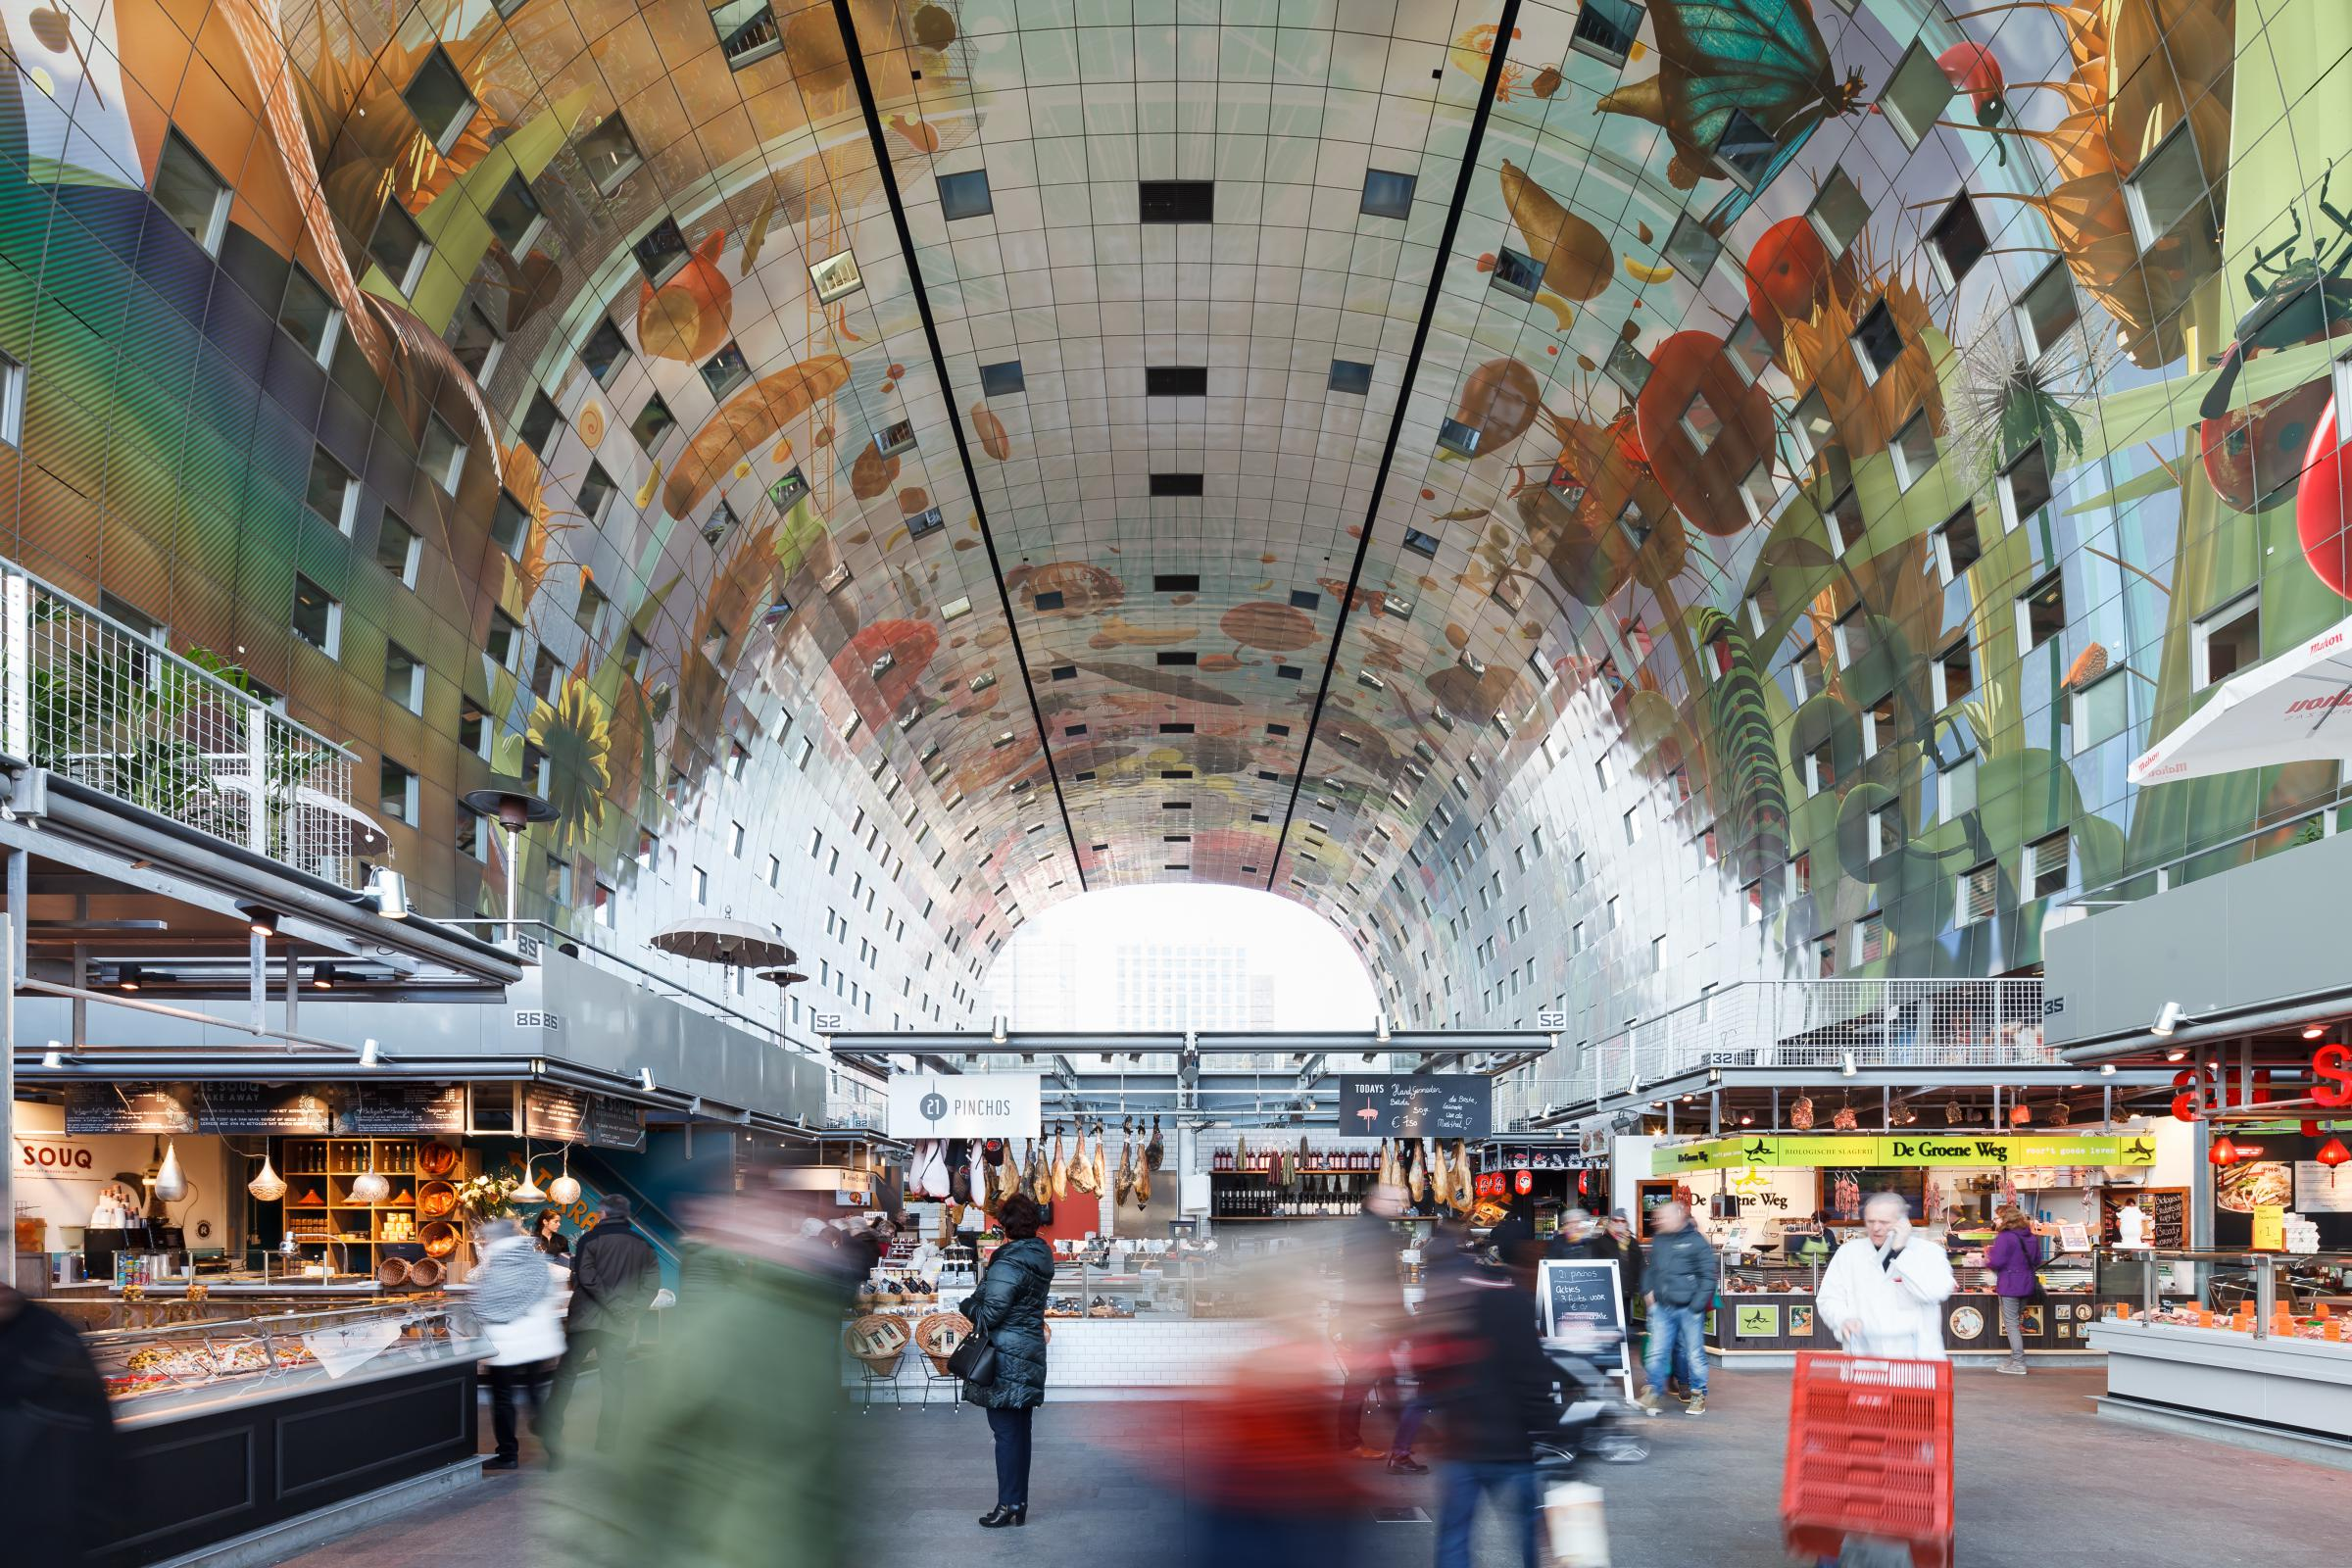 Photograph of Markthal Rotterdam, designed by MVRDV and located in Rotterdam, Netherlands